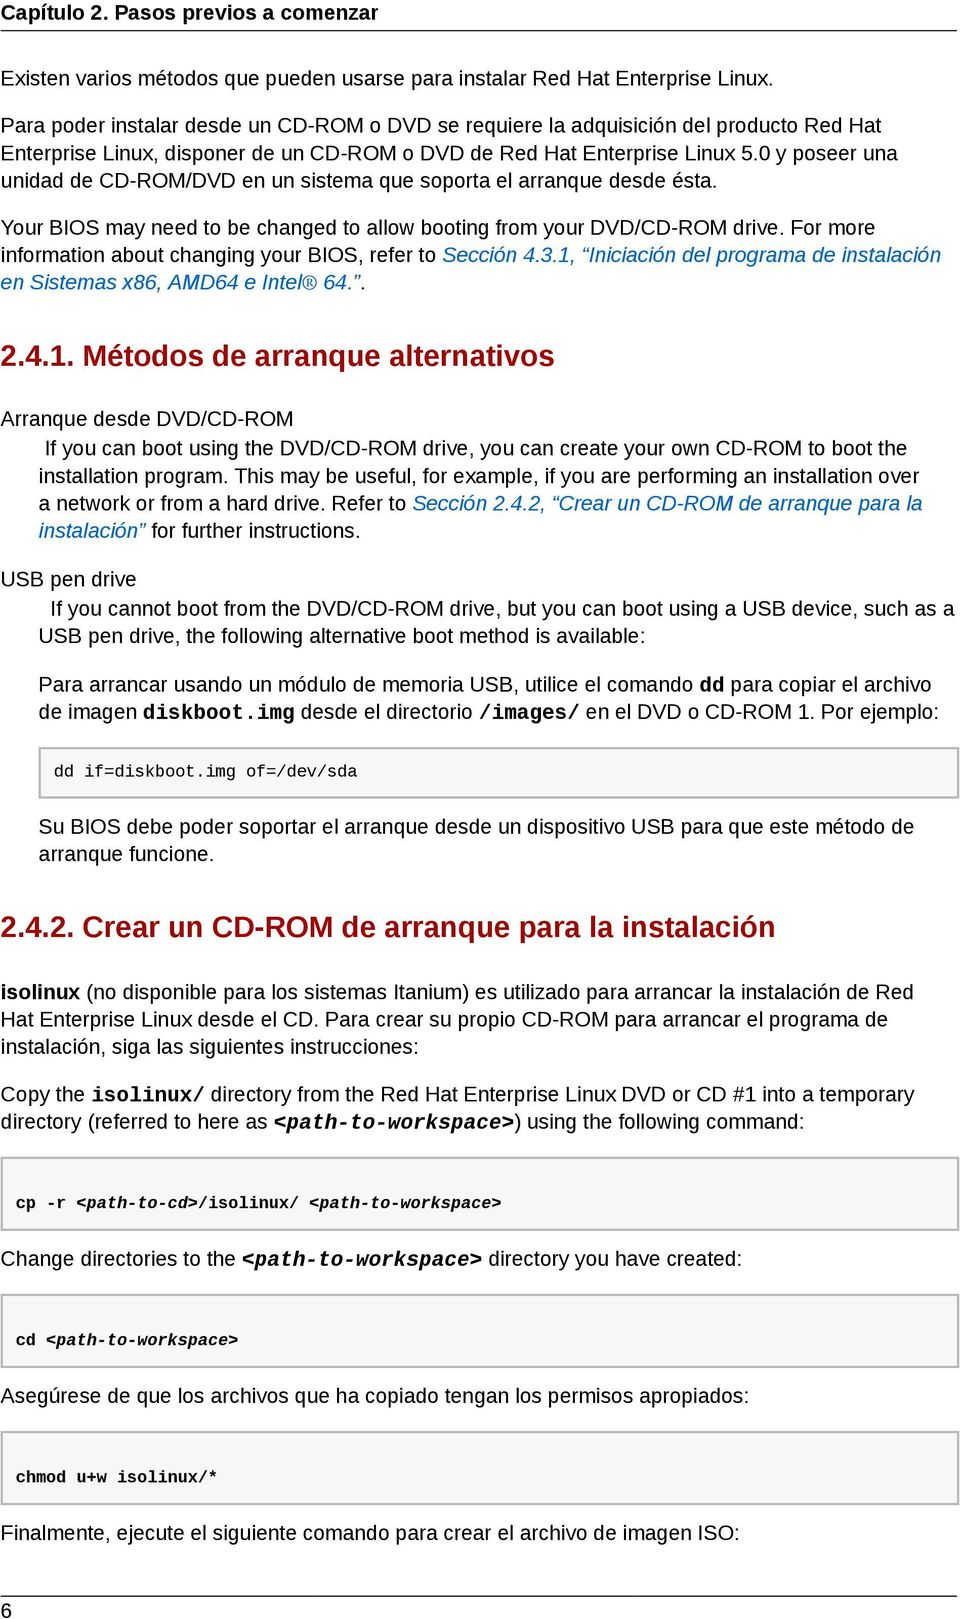 0 y poseer una unidad de CD-ROM/DVD en un sistema que soporta el arranque desde ésta. Your BIOS may need to be changed to allow booting from your DVD/CD-ROM drive.